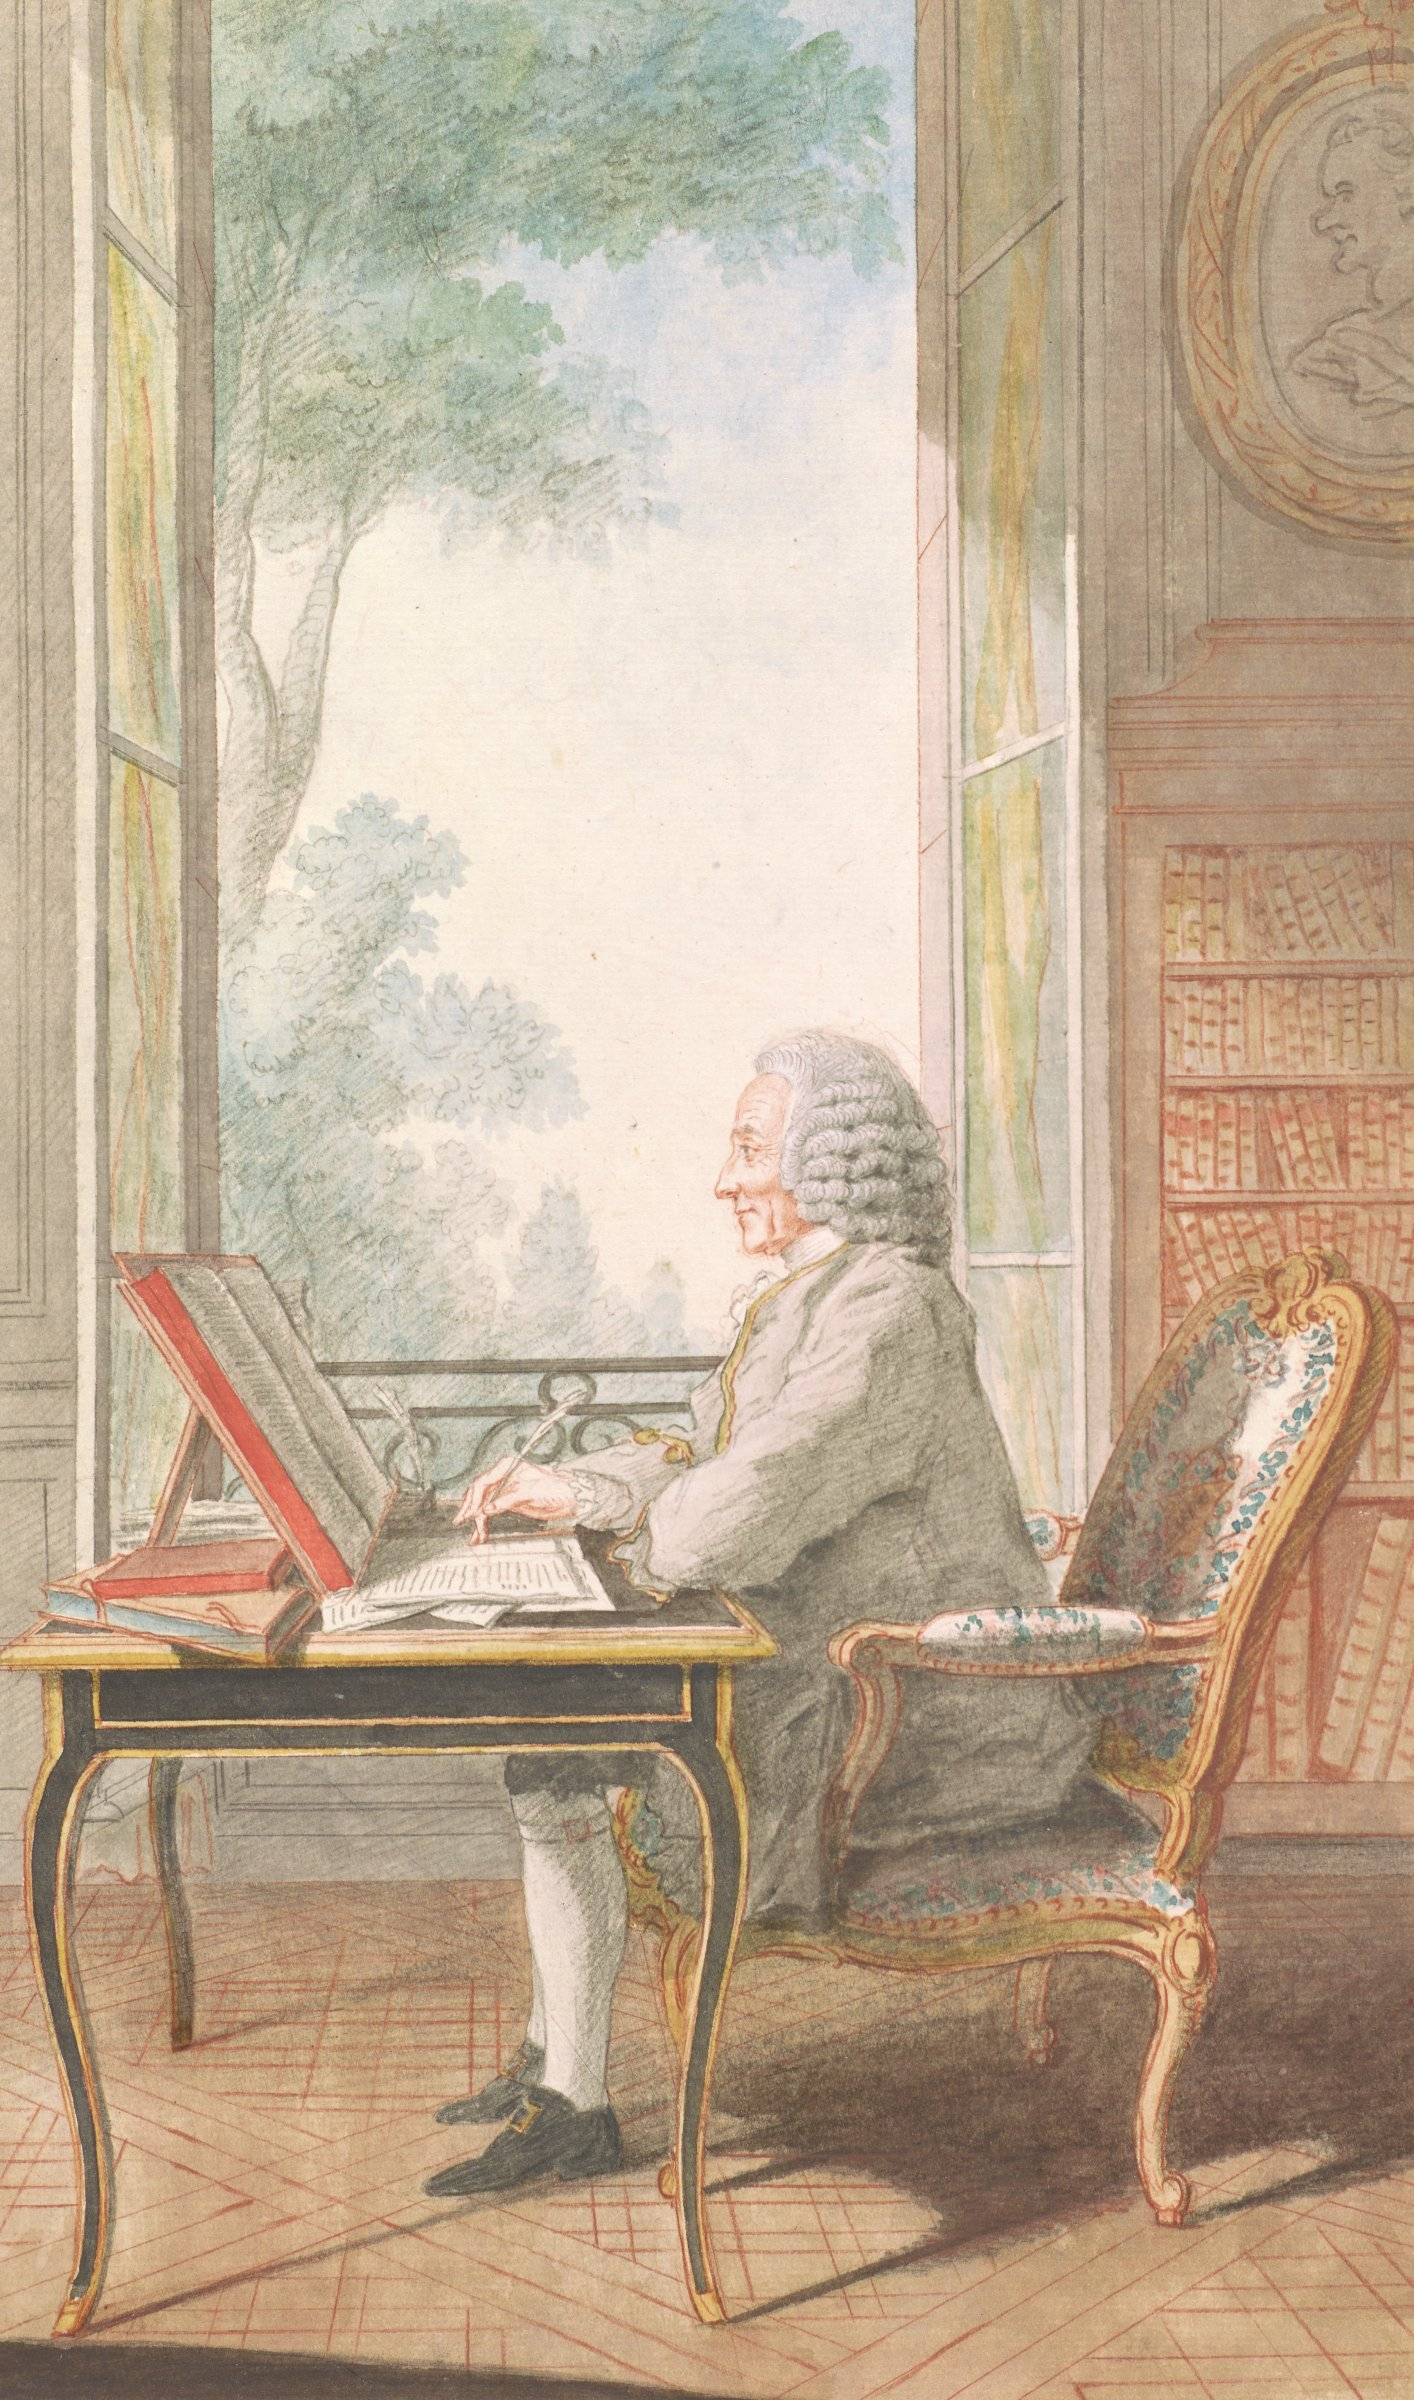 Seated man facing left, writing at a desk. He sits in front of a large open window. Bookshelves along the back wall to the right of the window, with an oval portrait above.